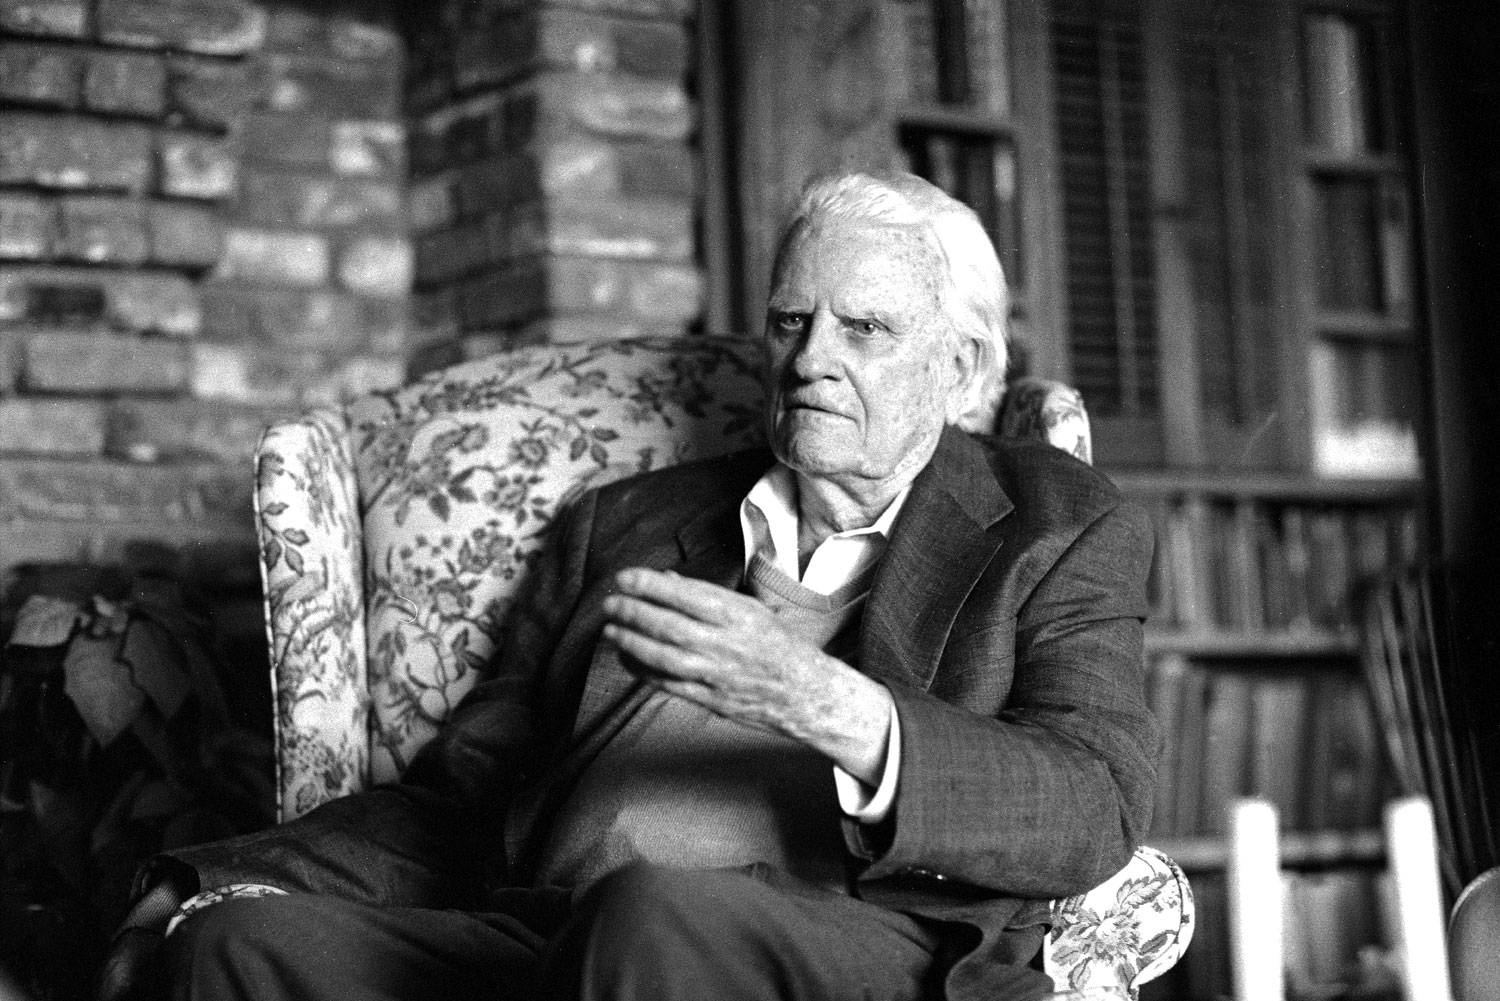 Preacher Man                                                              In his lifetime, Billy Graham has preached the Gospel in person to audiences that total 215 million people.